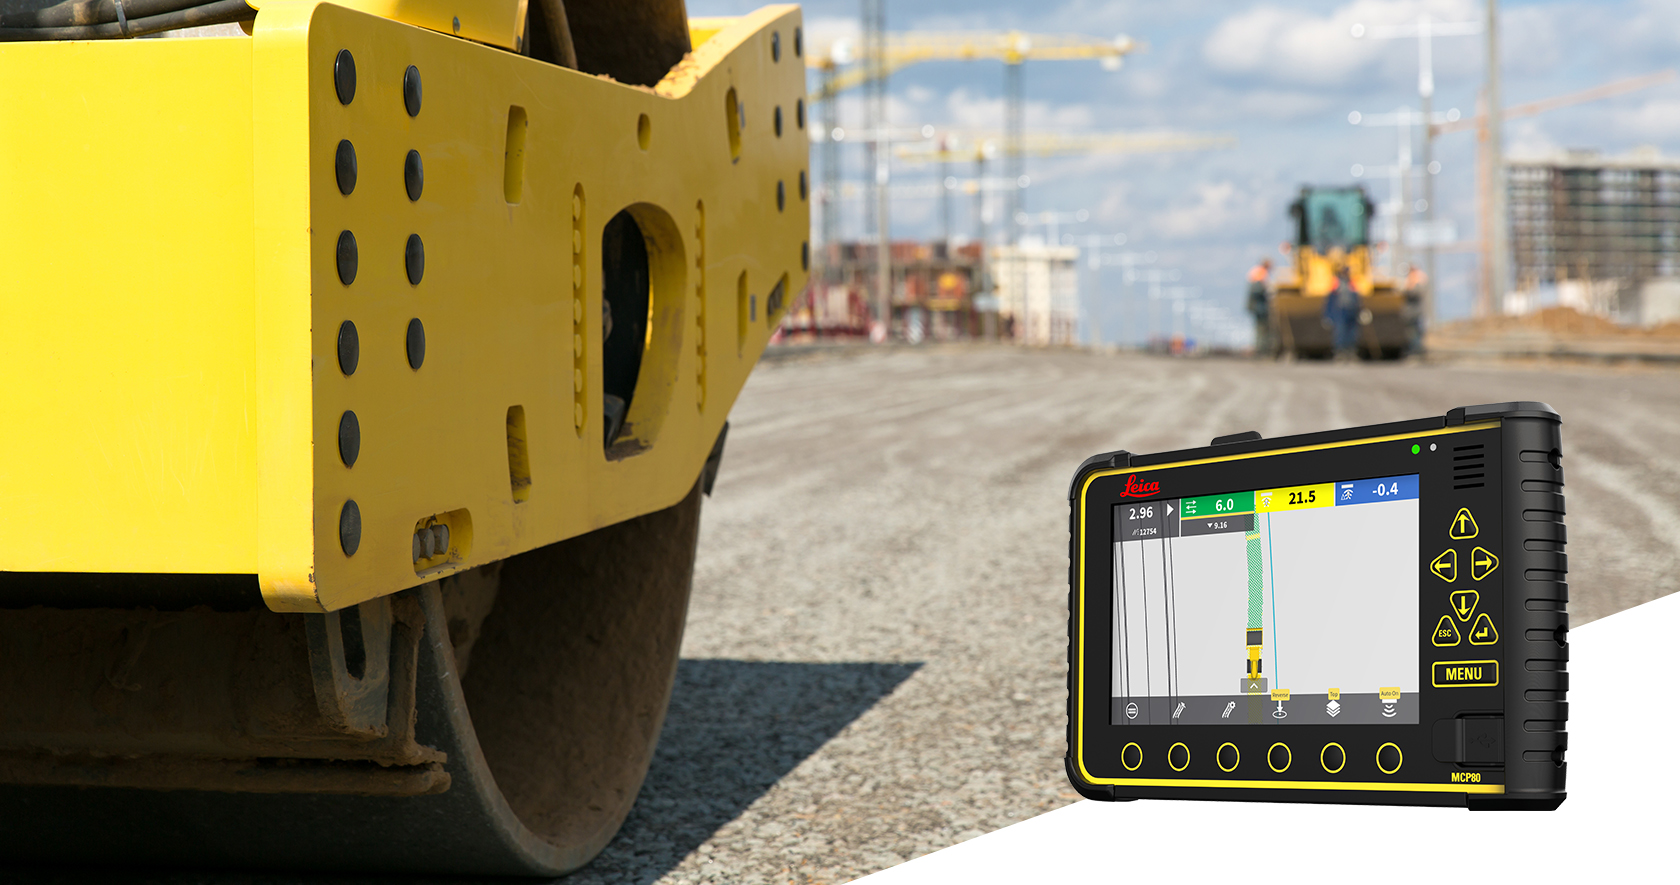 Leica Geosystems Rollers & Pavers Machine Control Systems